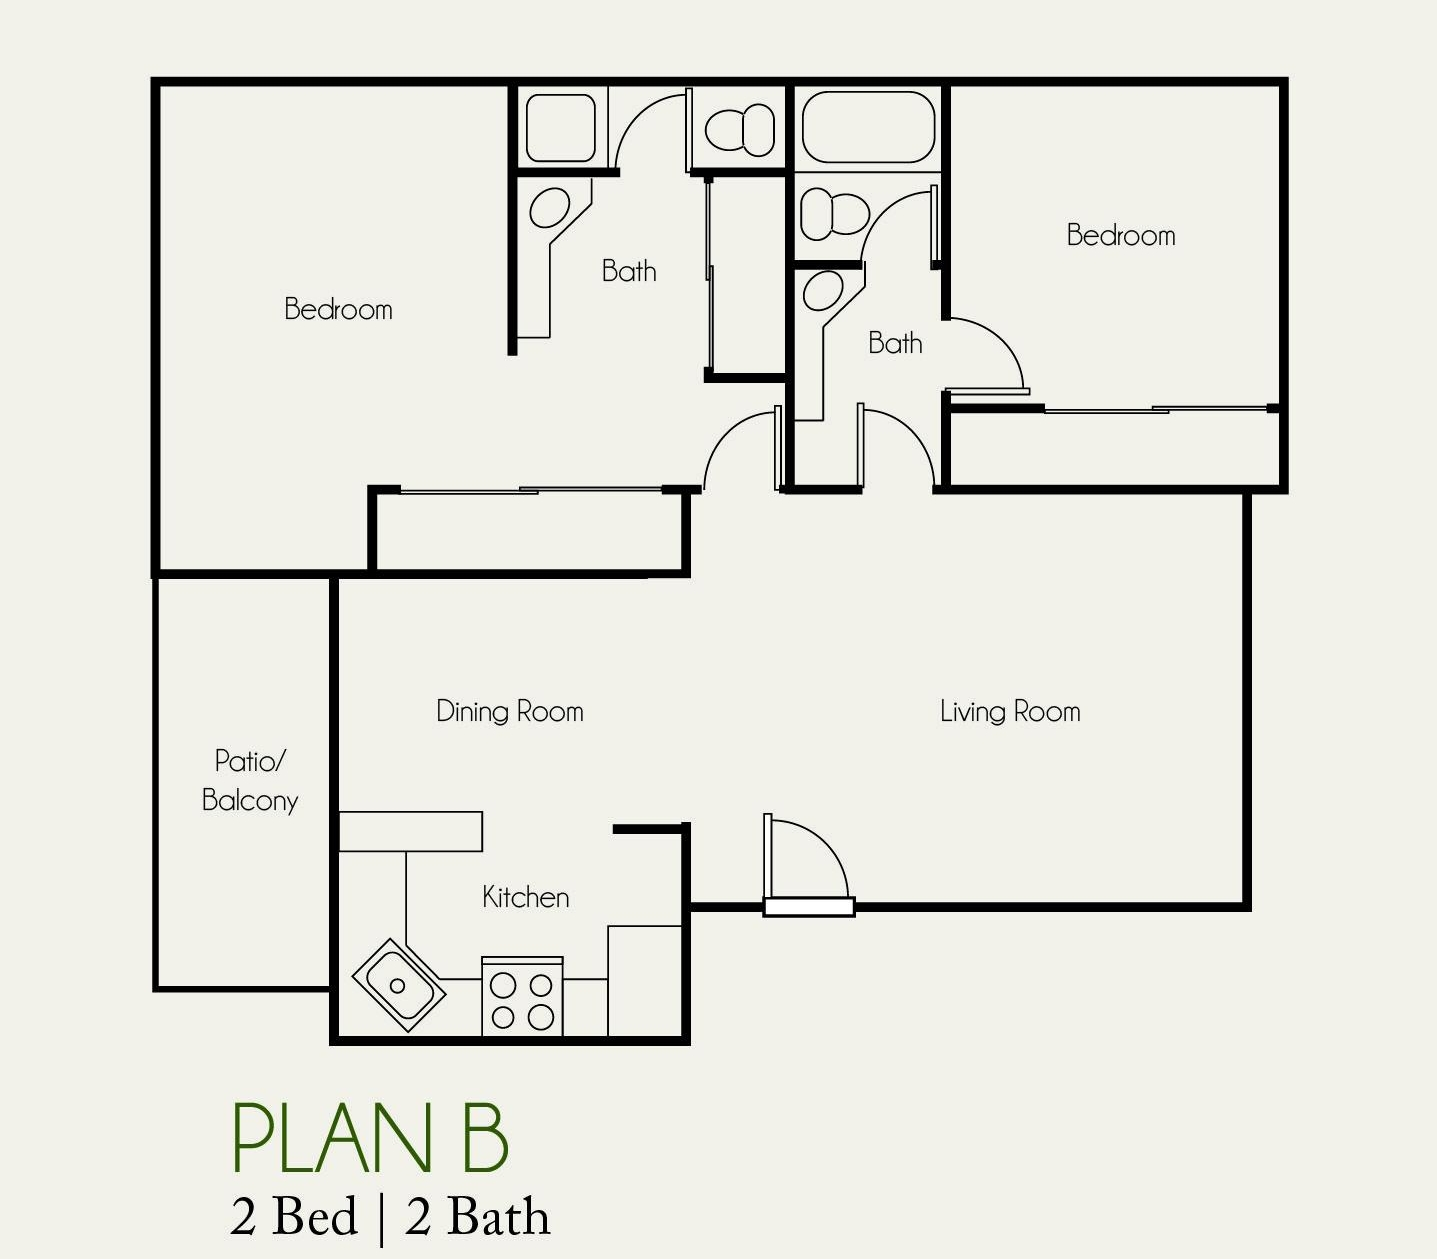 The Landing 2 bedroom | 2 bath plan